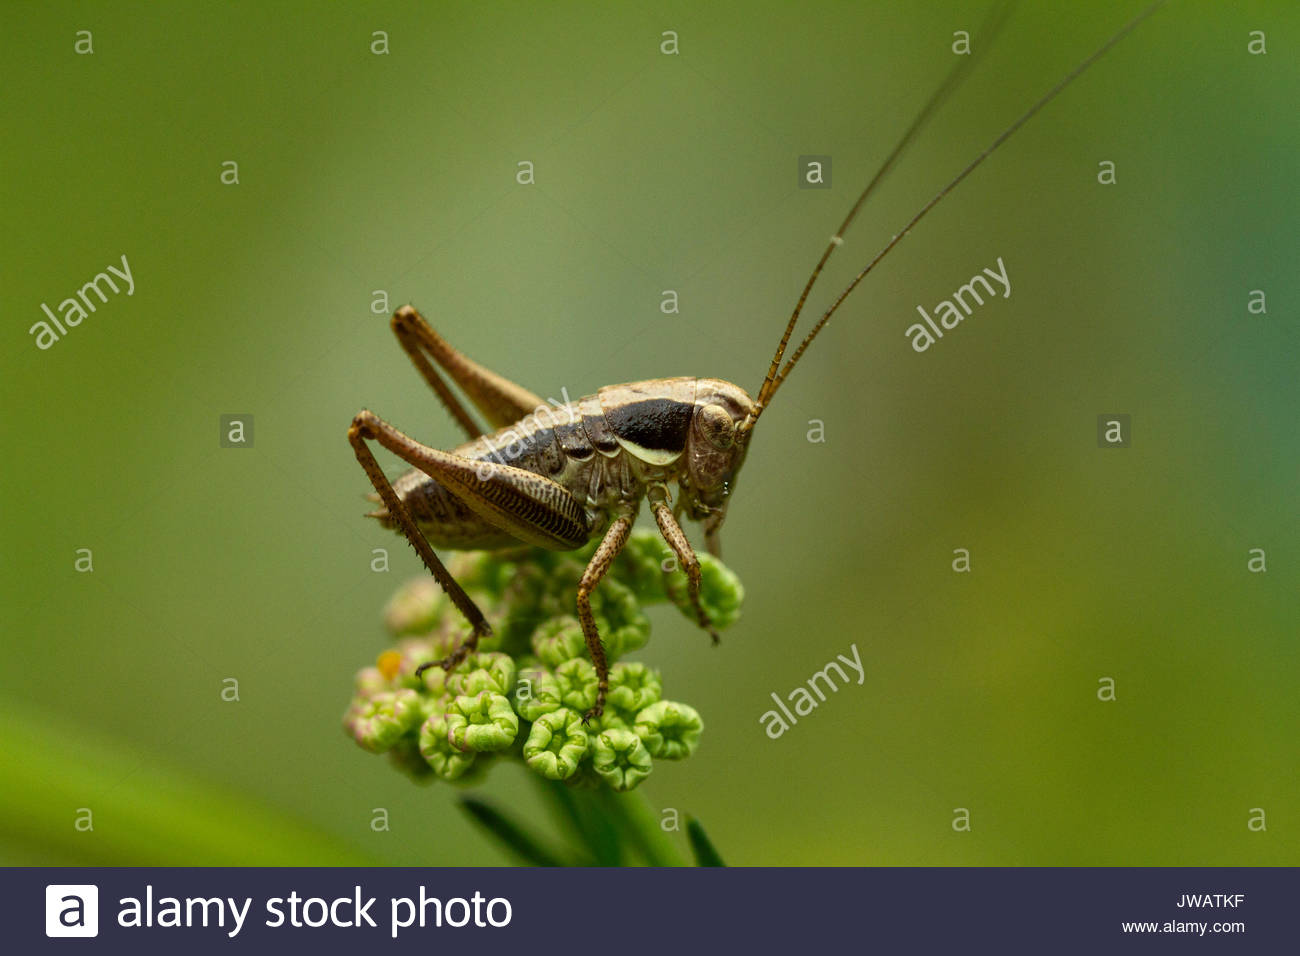 A grasshopper,Gomphocerinae,resting on a plant. - Stock Image